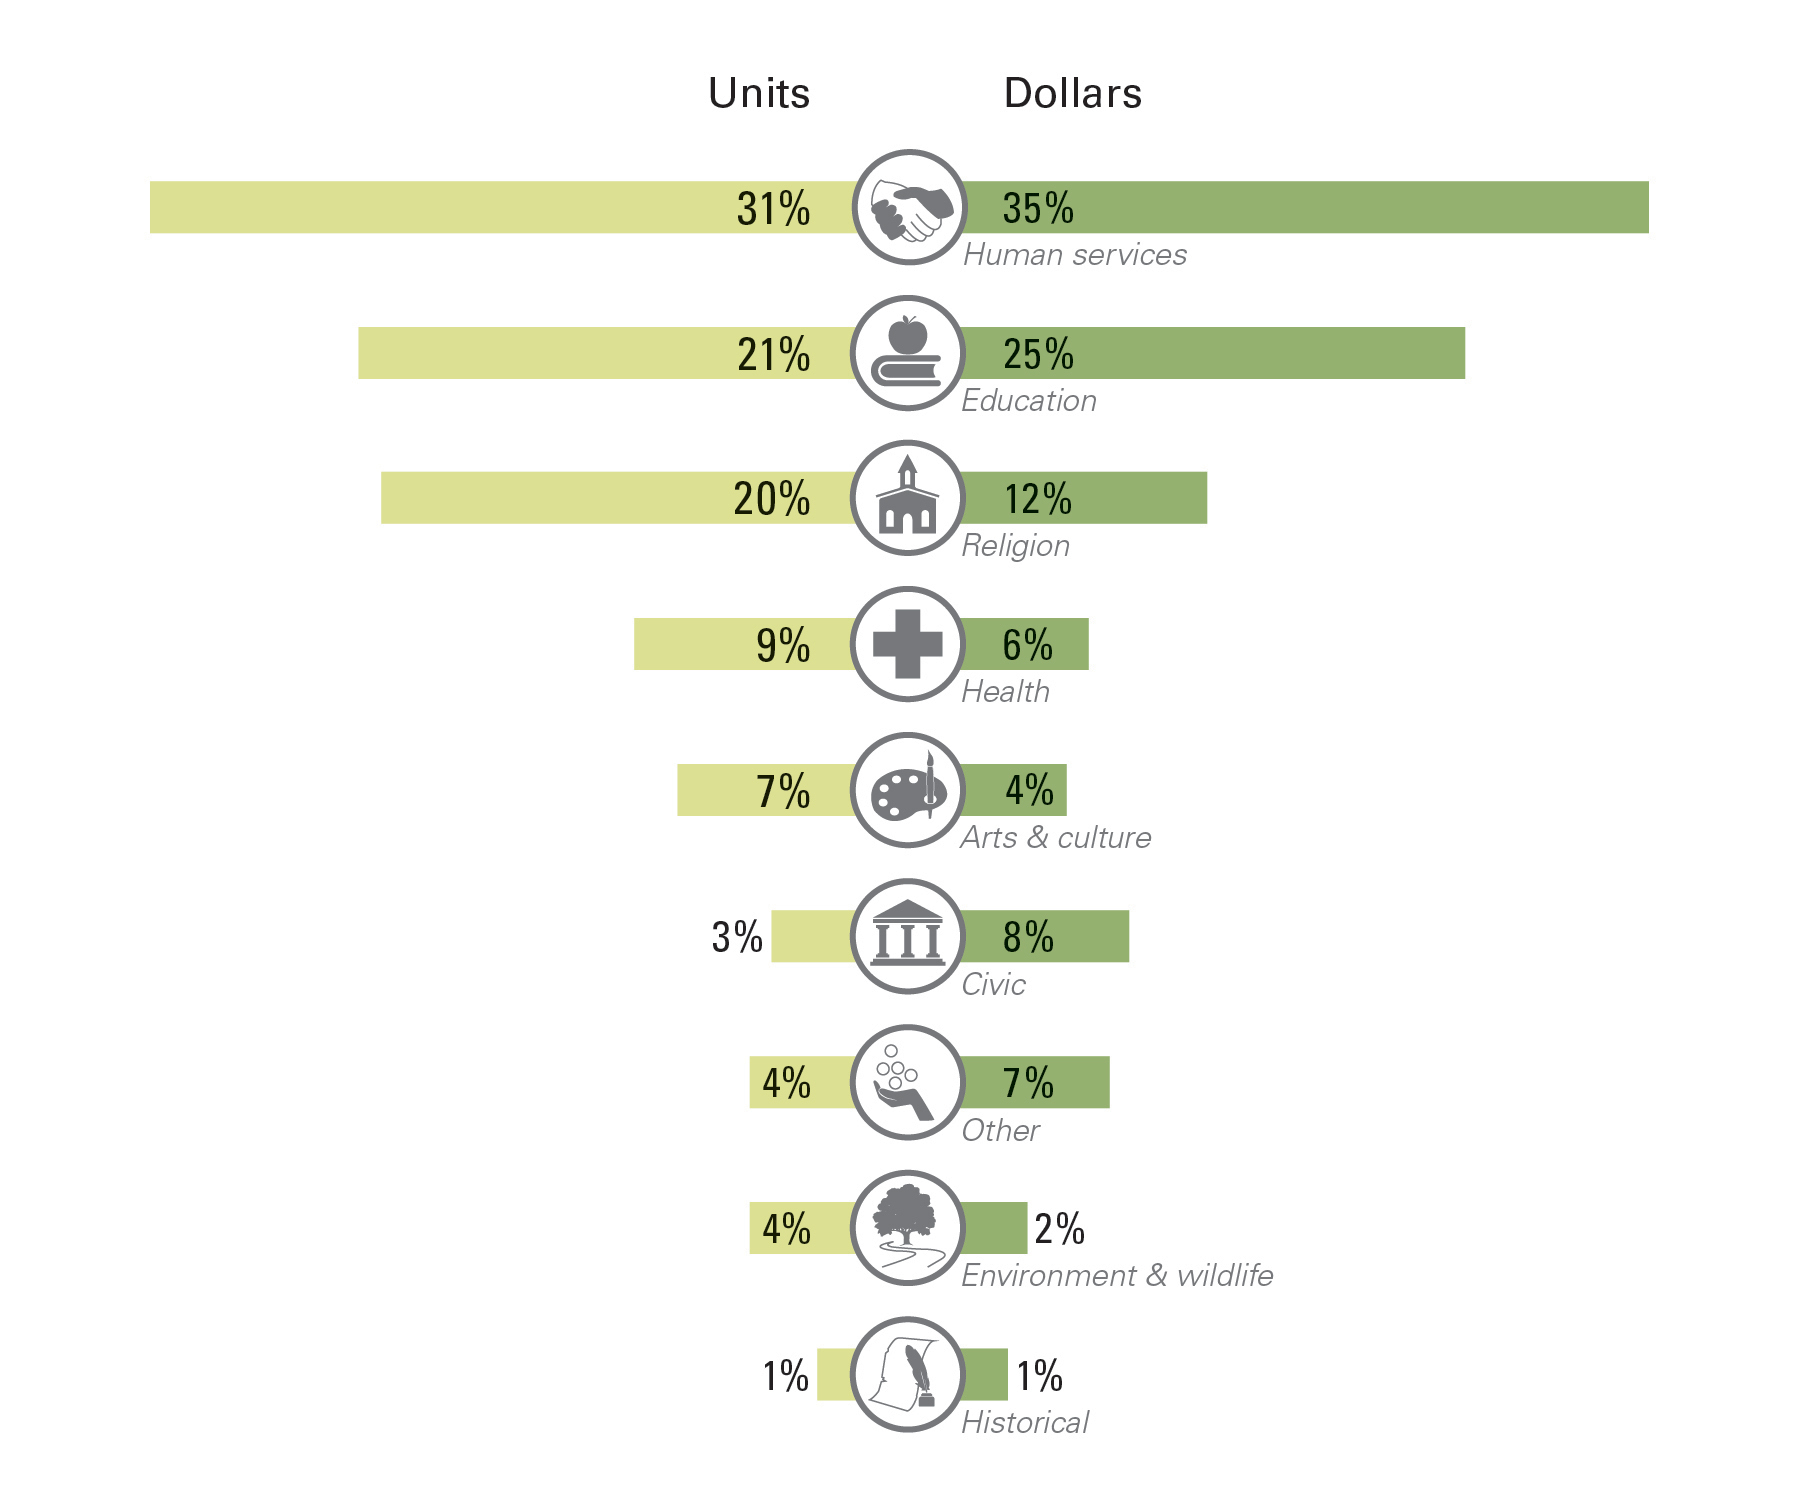 Vanguard Charitable's donors support a variety of causes. (Graphic: Business Wire)